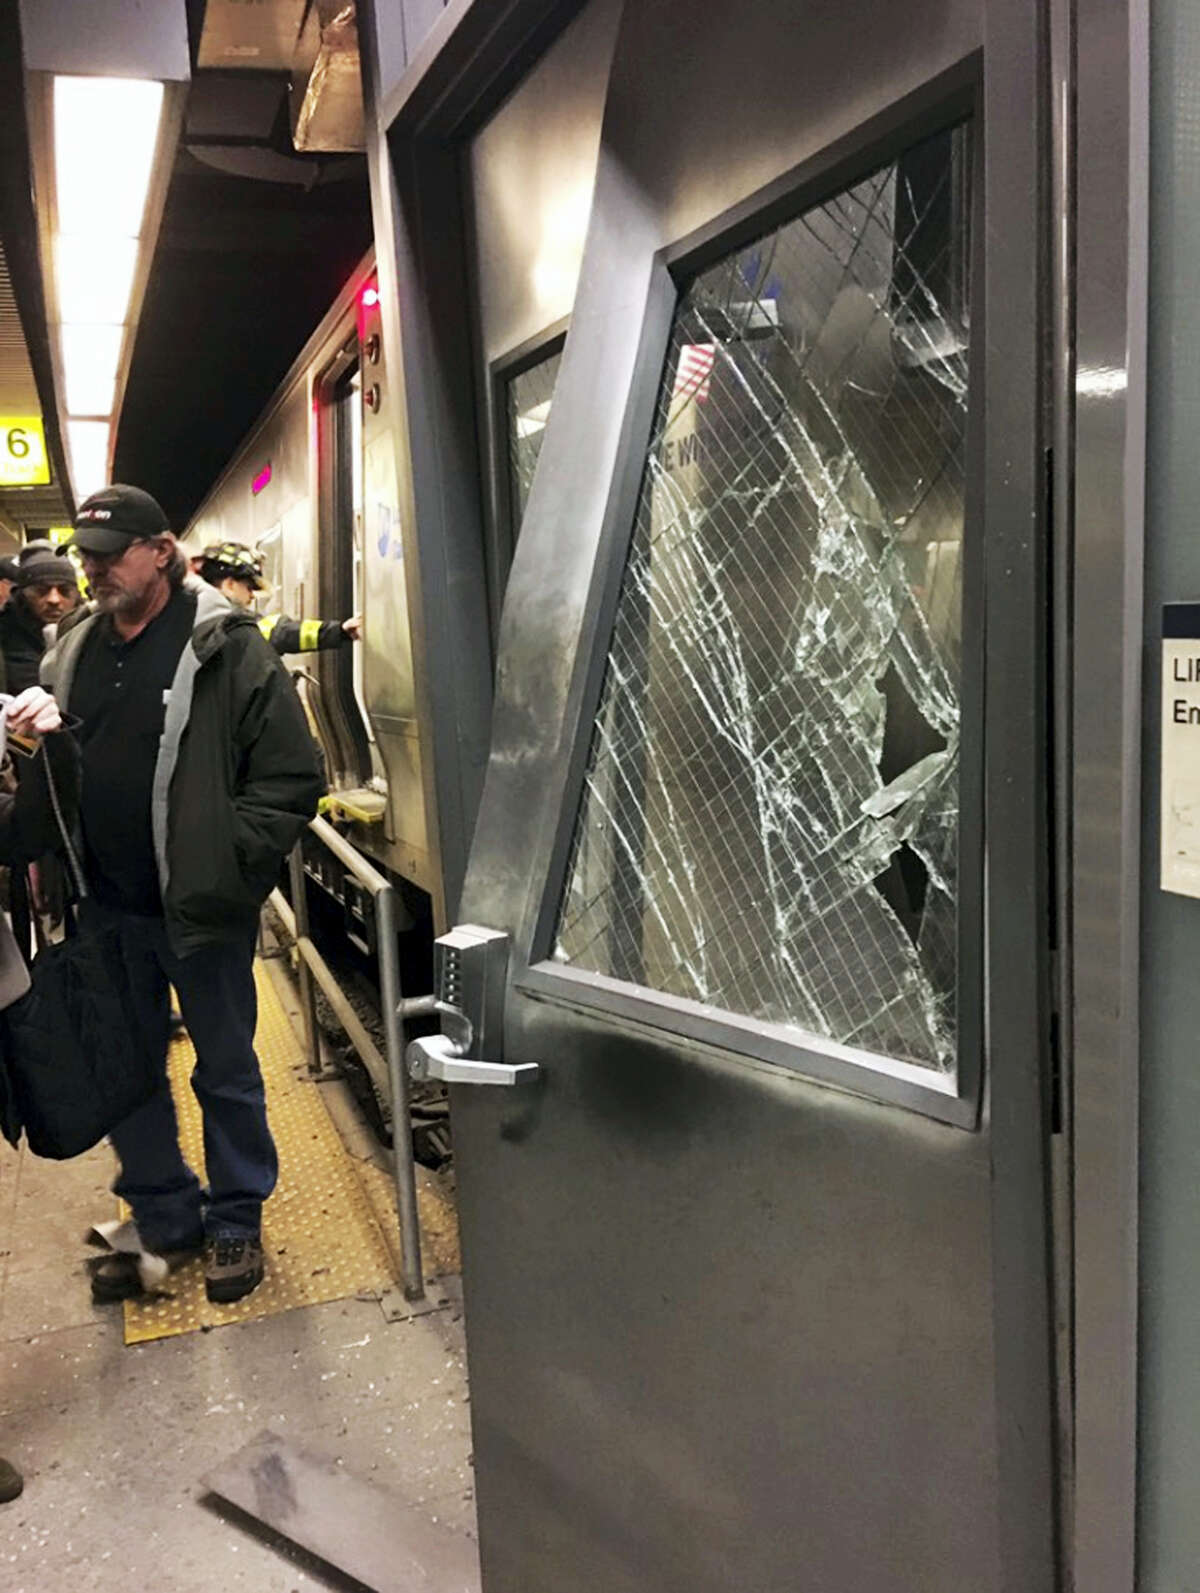 Emergency personnel work at the scene at Atlantic Terminal after New York City authorities said a Long Island Rail Road train either hit a bumping block or derailed at the station in the Brooklyn borough of New York, Wednesday, Jan. 4, 2017.